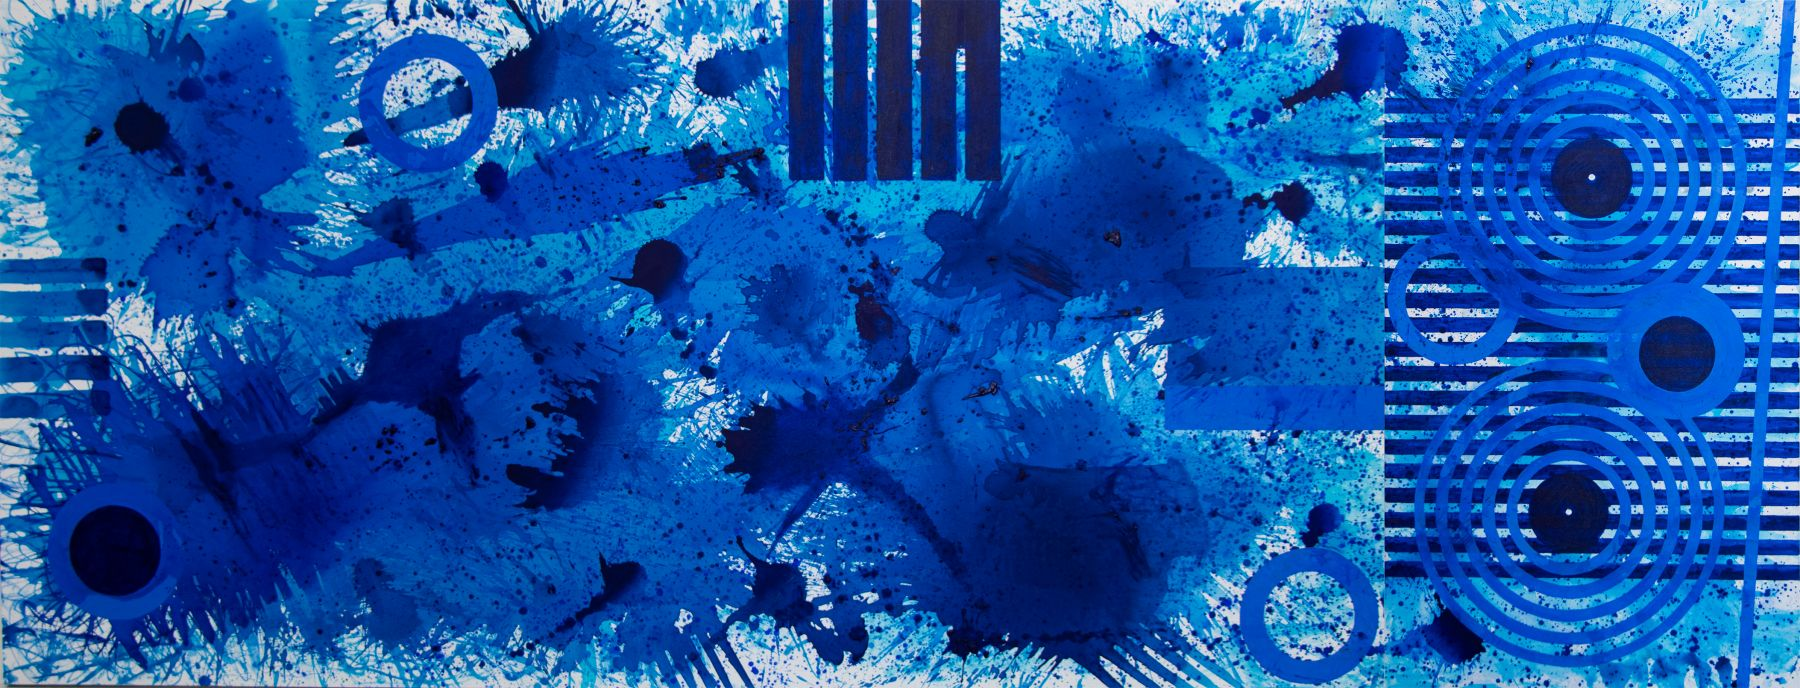 J. Steven Manolis, Splash 2020, 60 x 156 inches, Acrylic on canvas, Abstract expressionism paintings for sale at Manolis Projects Art Gallery, Miami, Fl